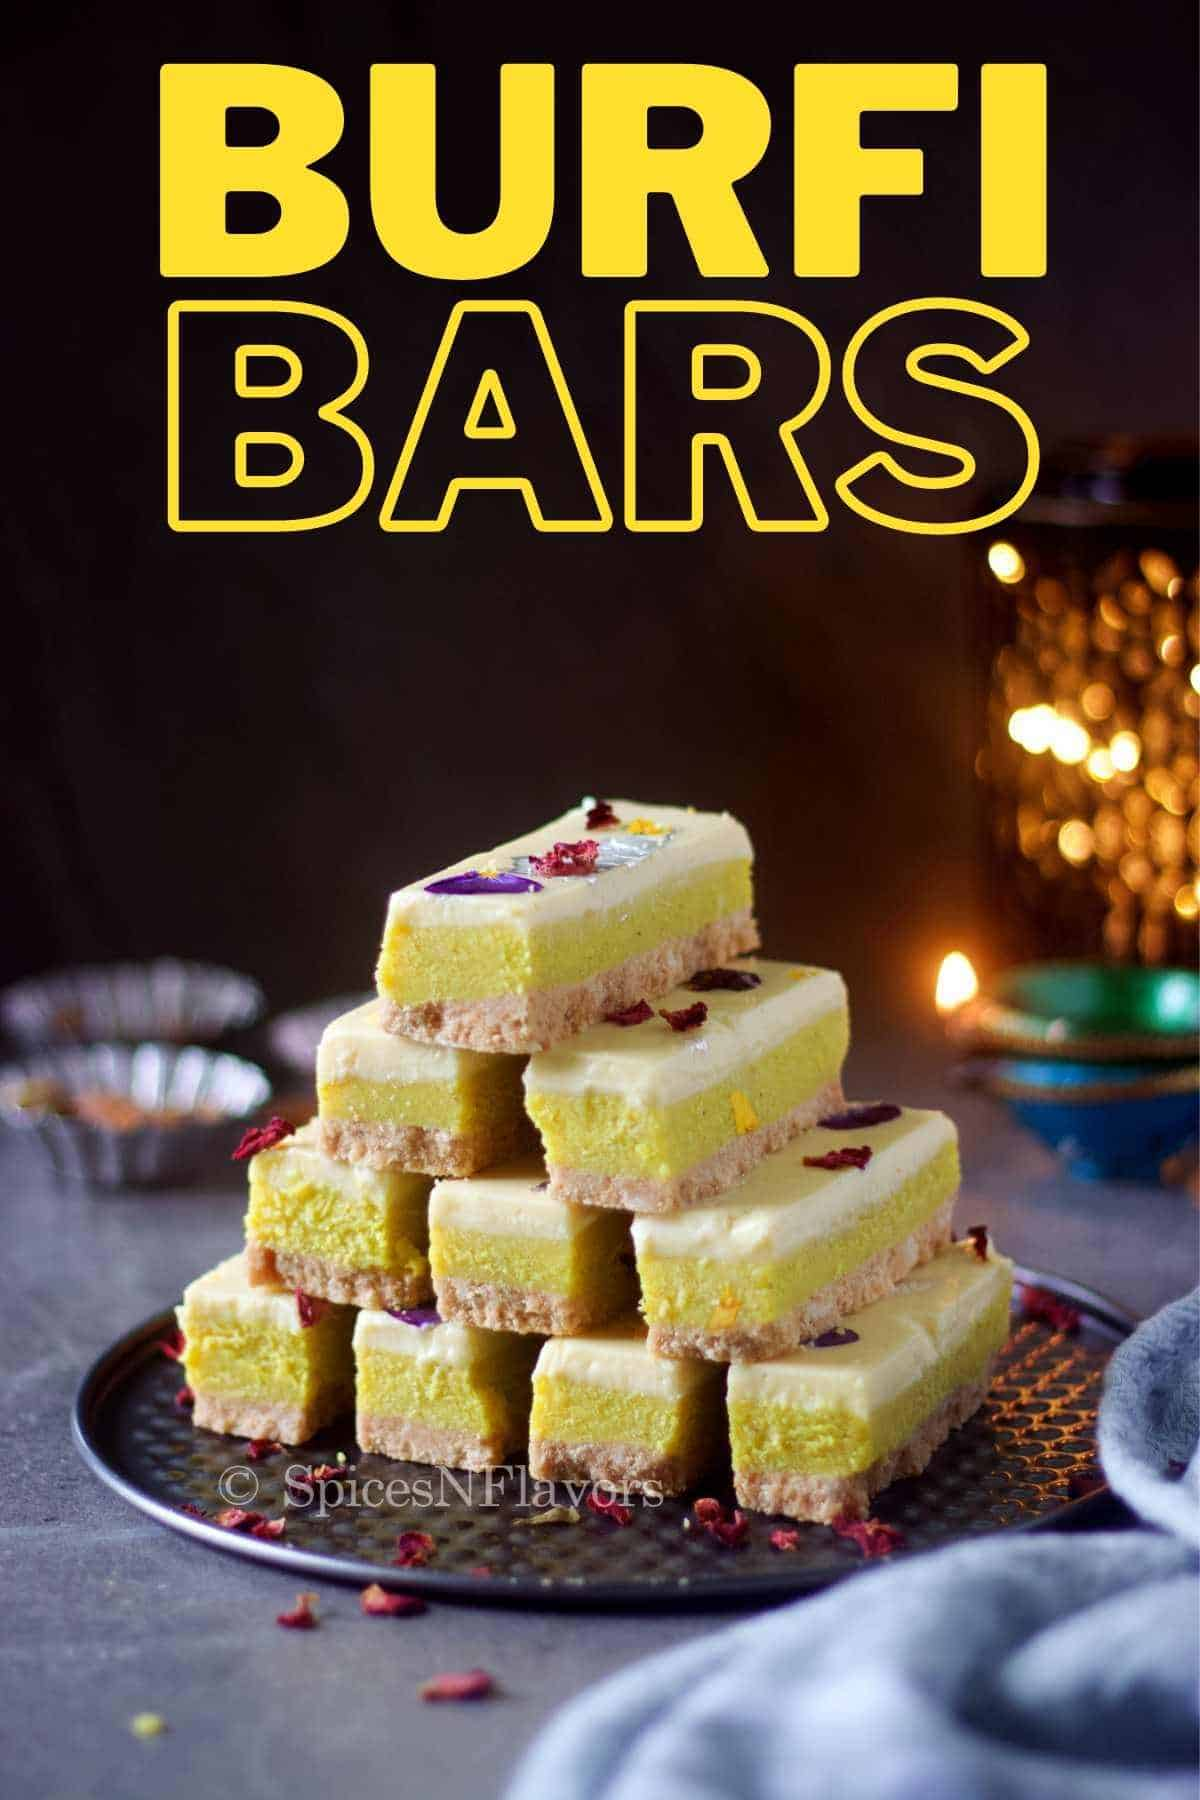 milk powder burfi bars stacked on one top of the other to form a pyramid